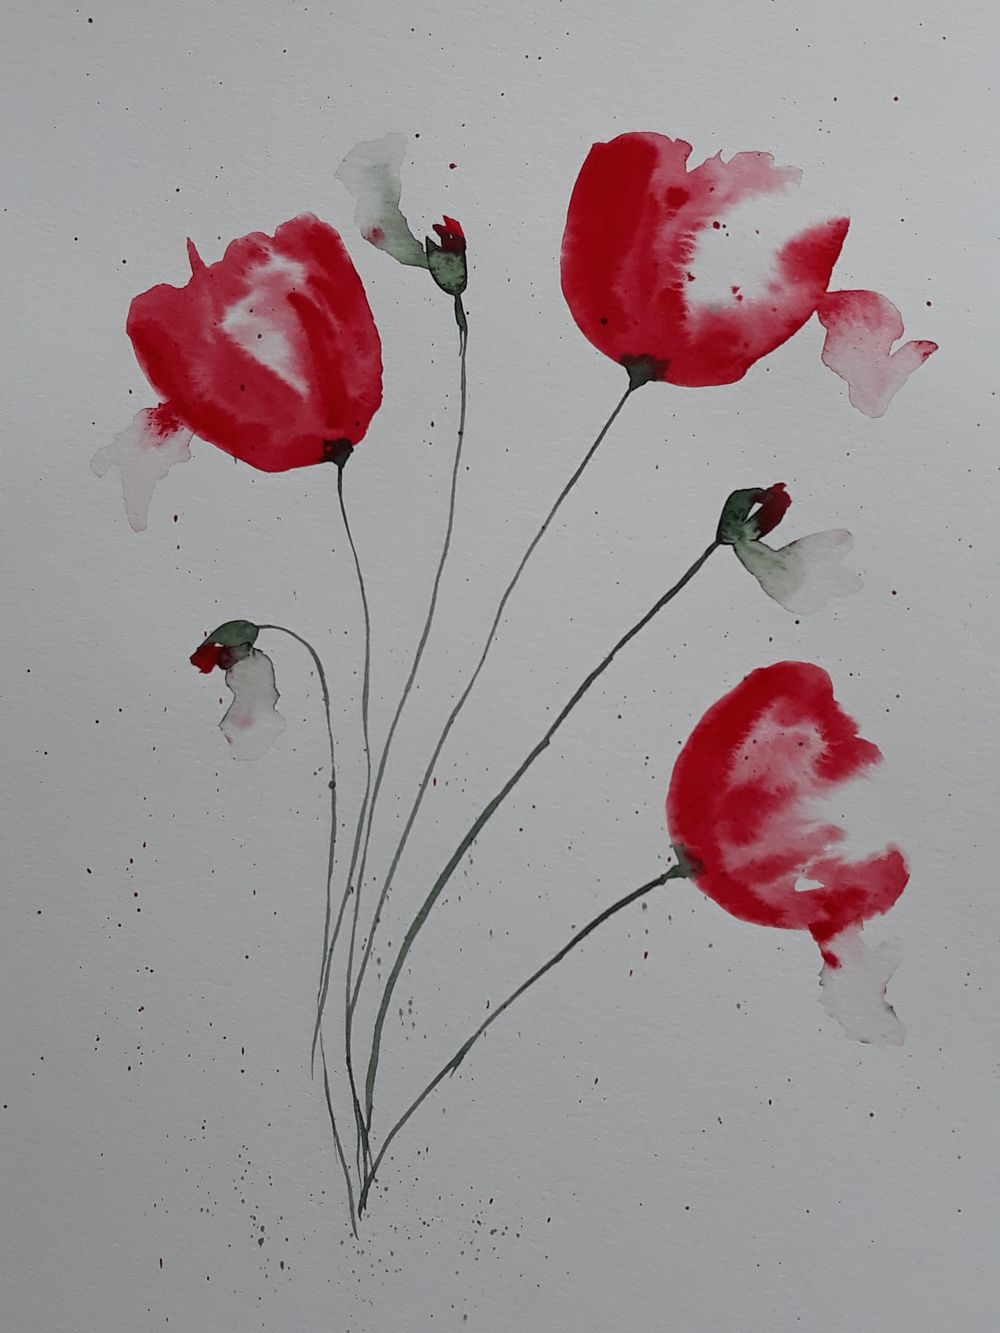 Loose flowers - image 1 - student project